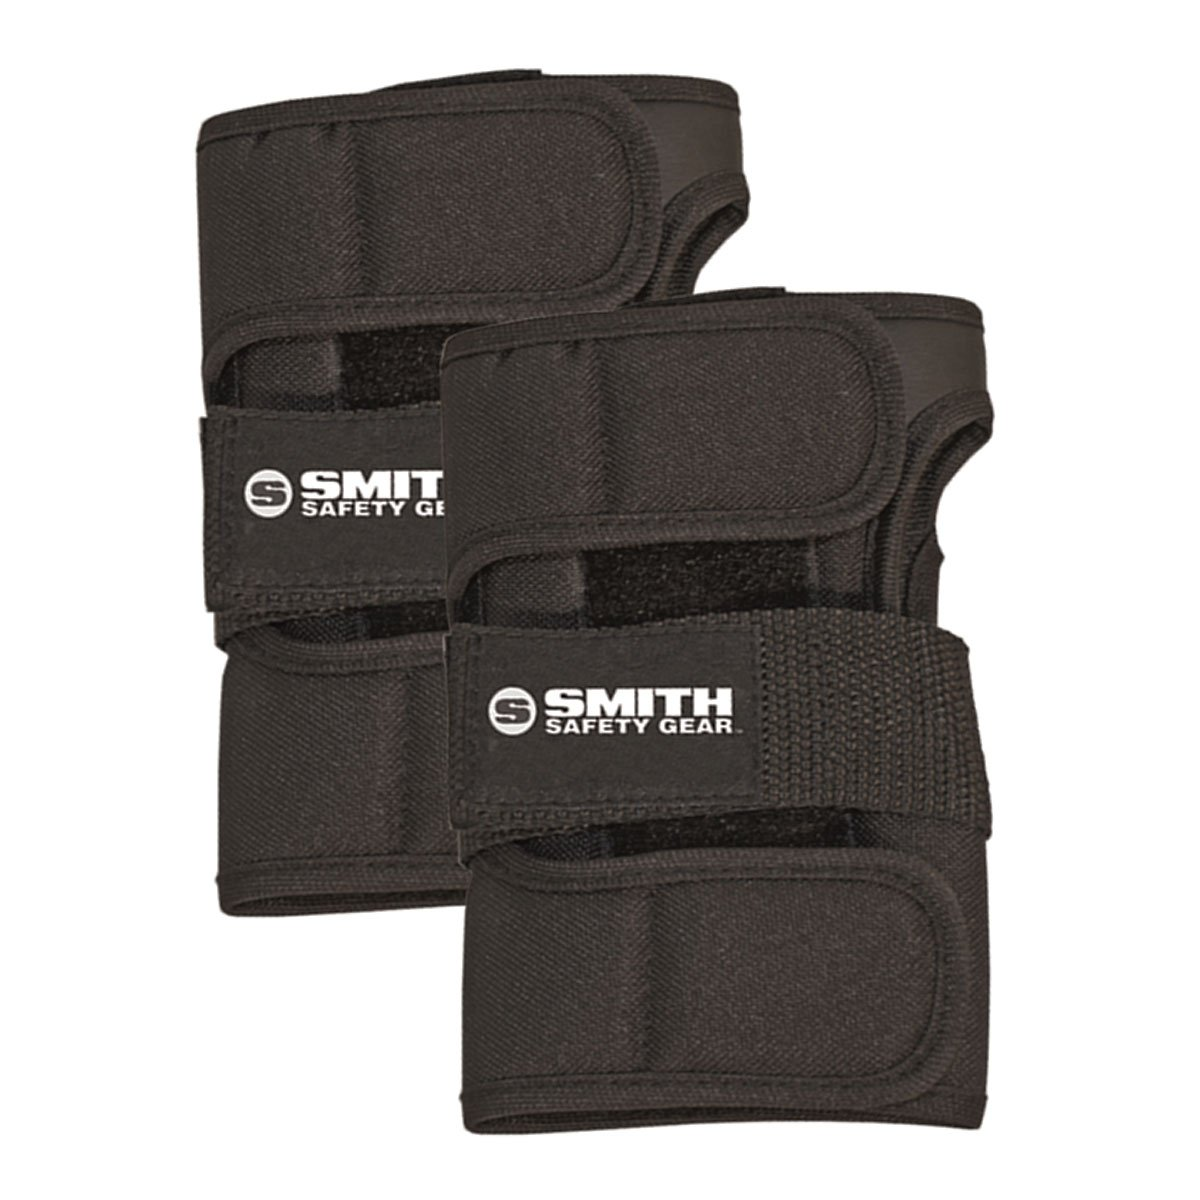 Smith Safety Gear Scabs Wrist Guards Select Distribution SG39-Blk